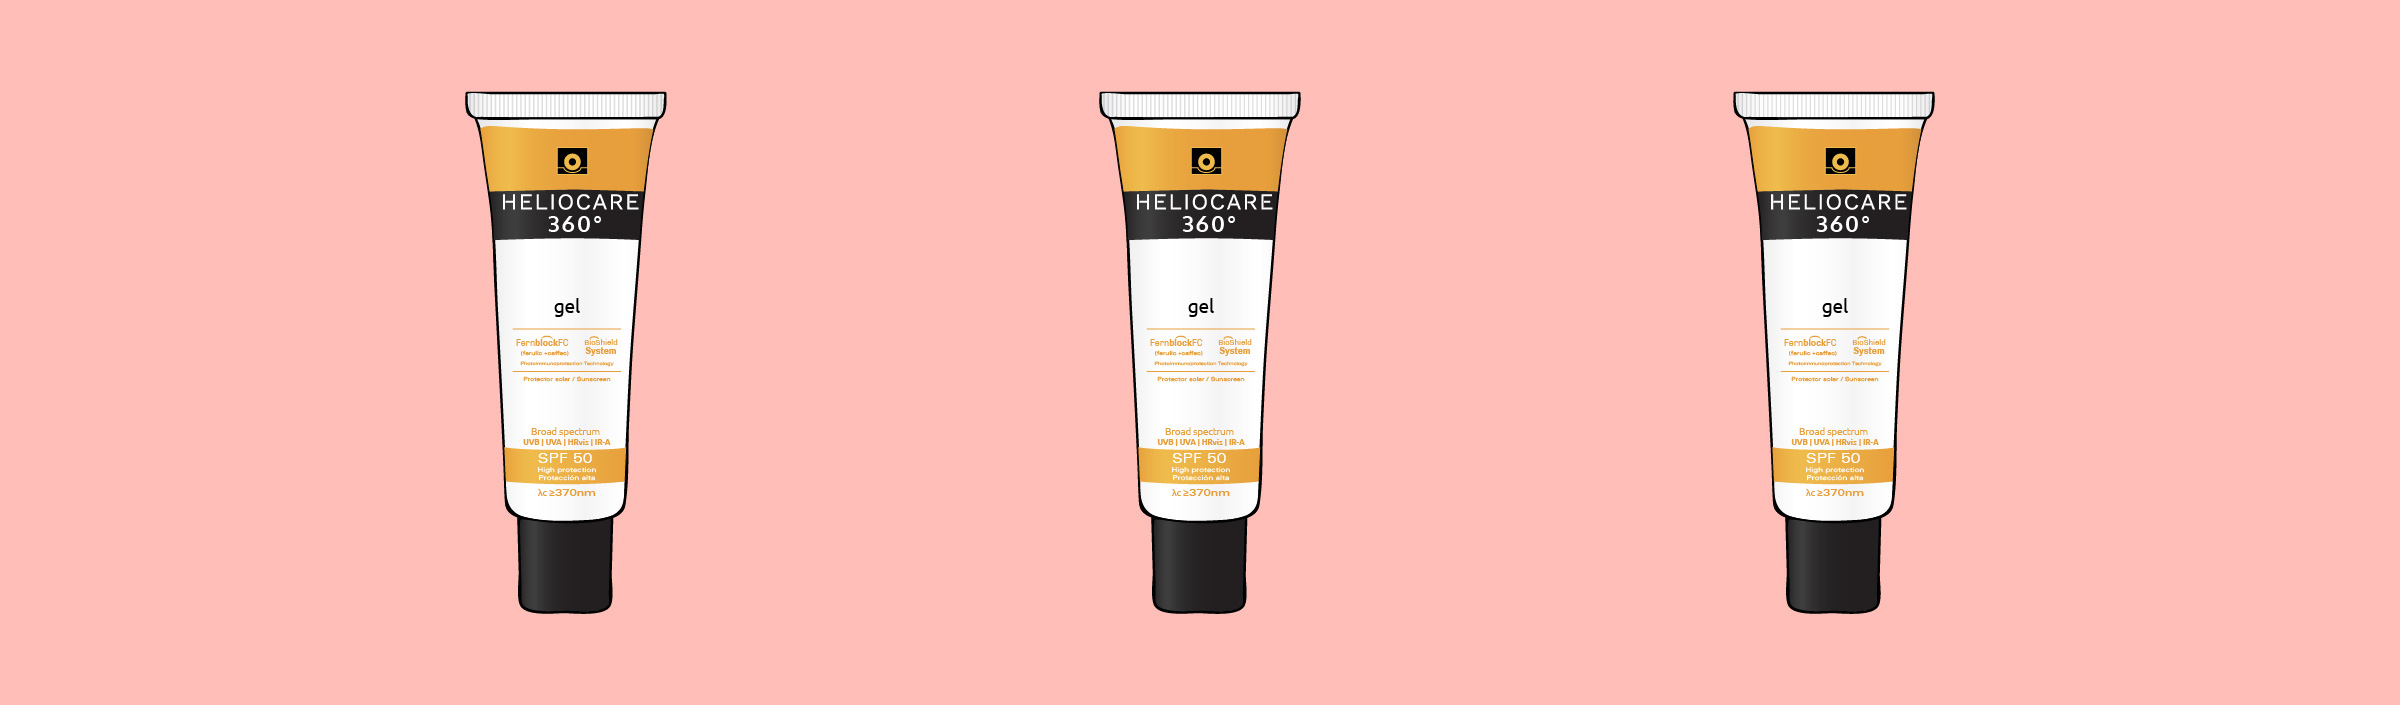 Heliocare 360 Gel Review.jpg